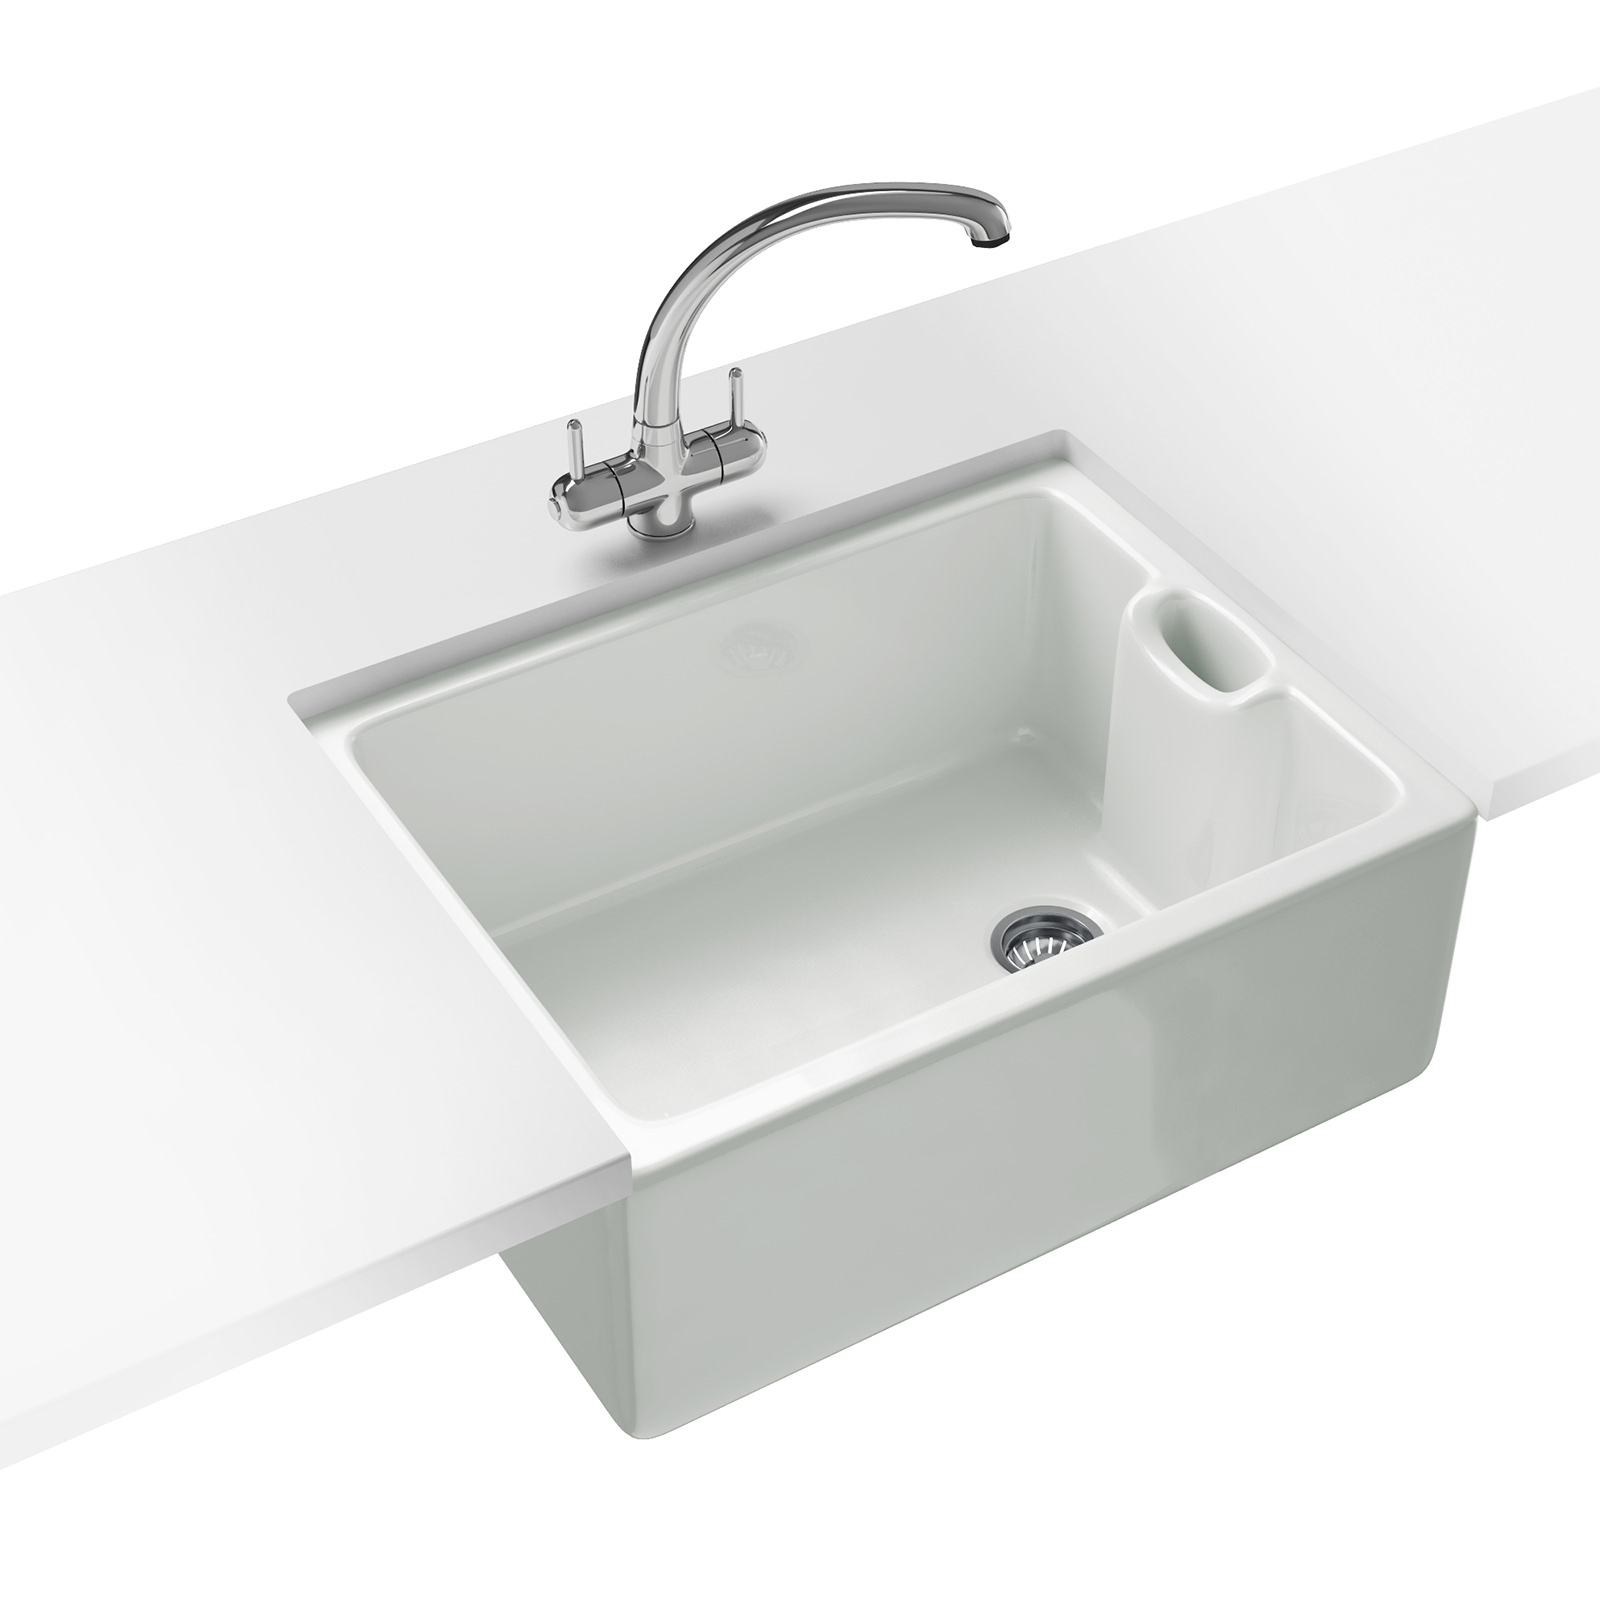 Franke Belfast BAK 710 Ceramic White 1.0 Bowl Kitchen Sink Technical  Drawing QS V30039 / 1300050116 BOM Additional Image Of Franke 1300050116 BOM